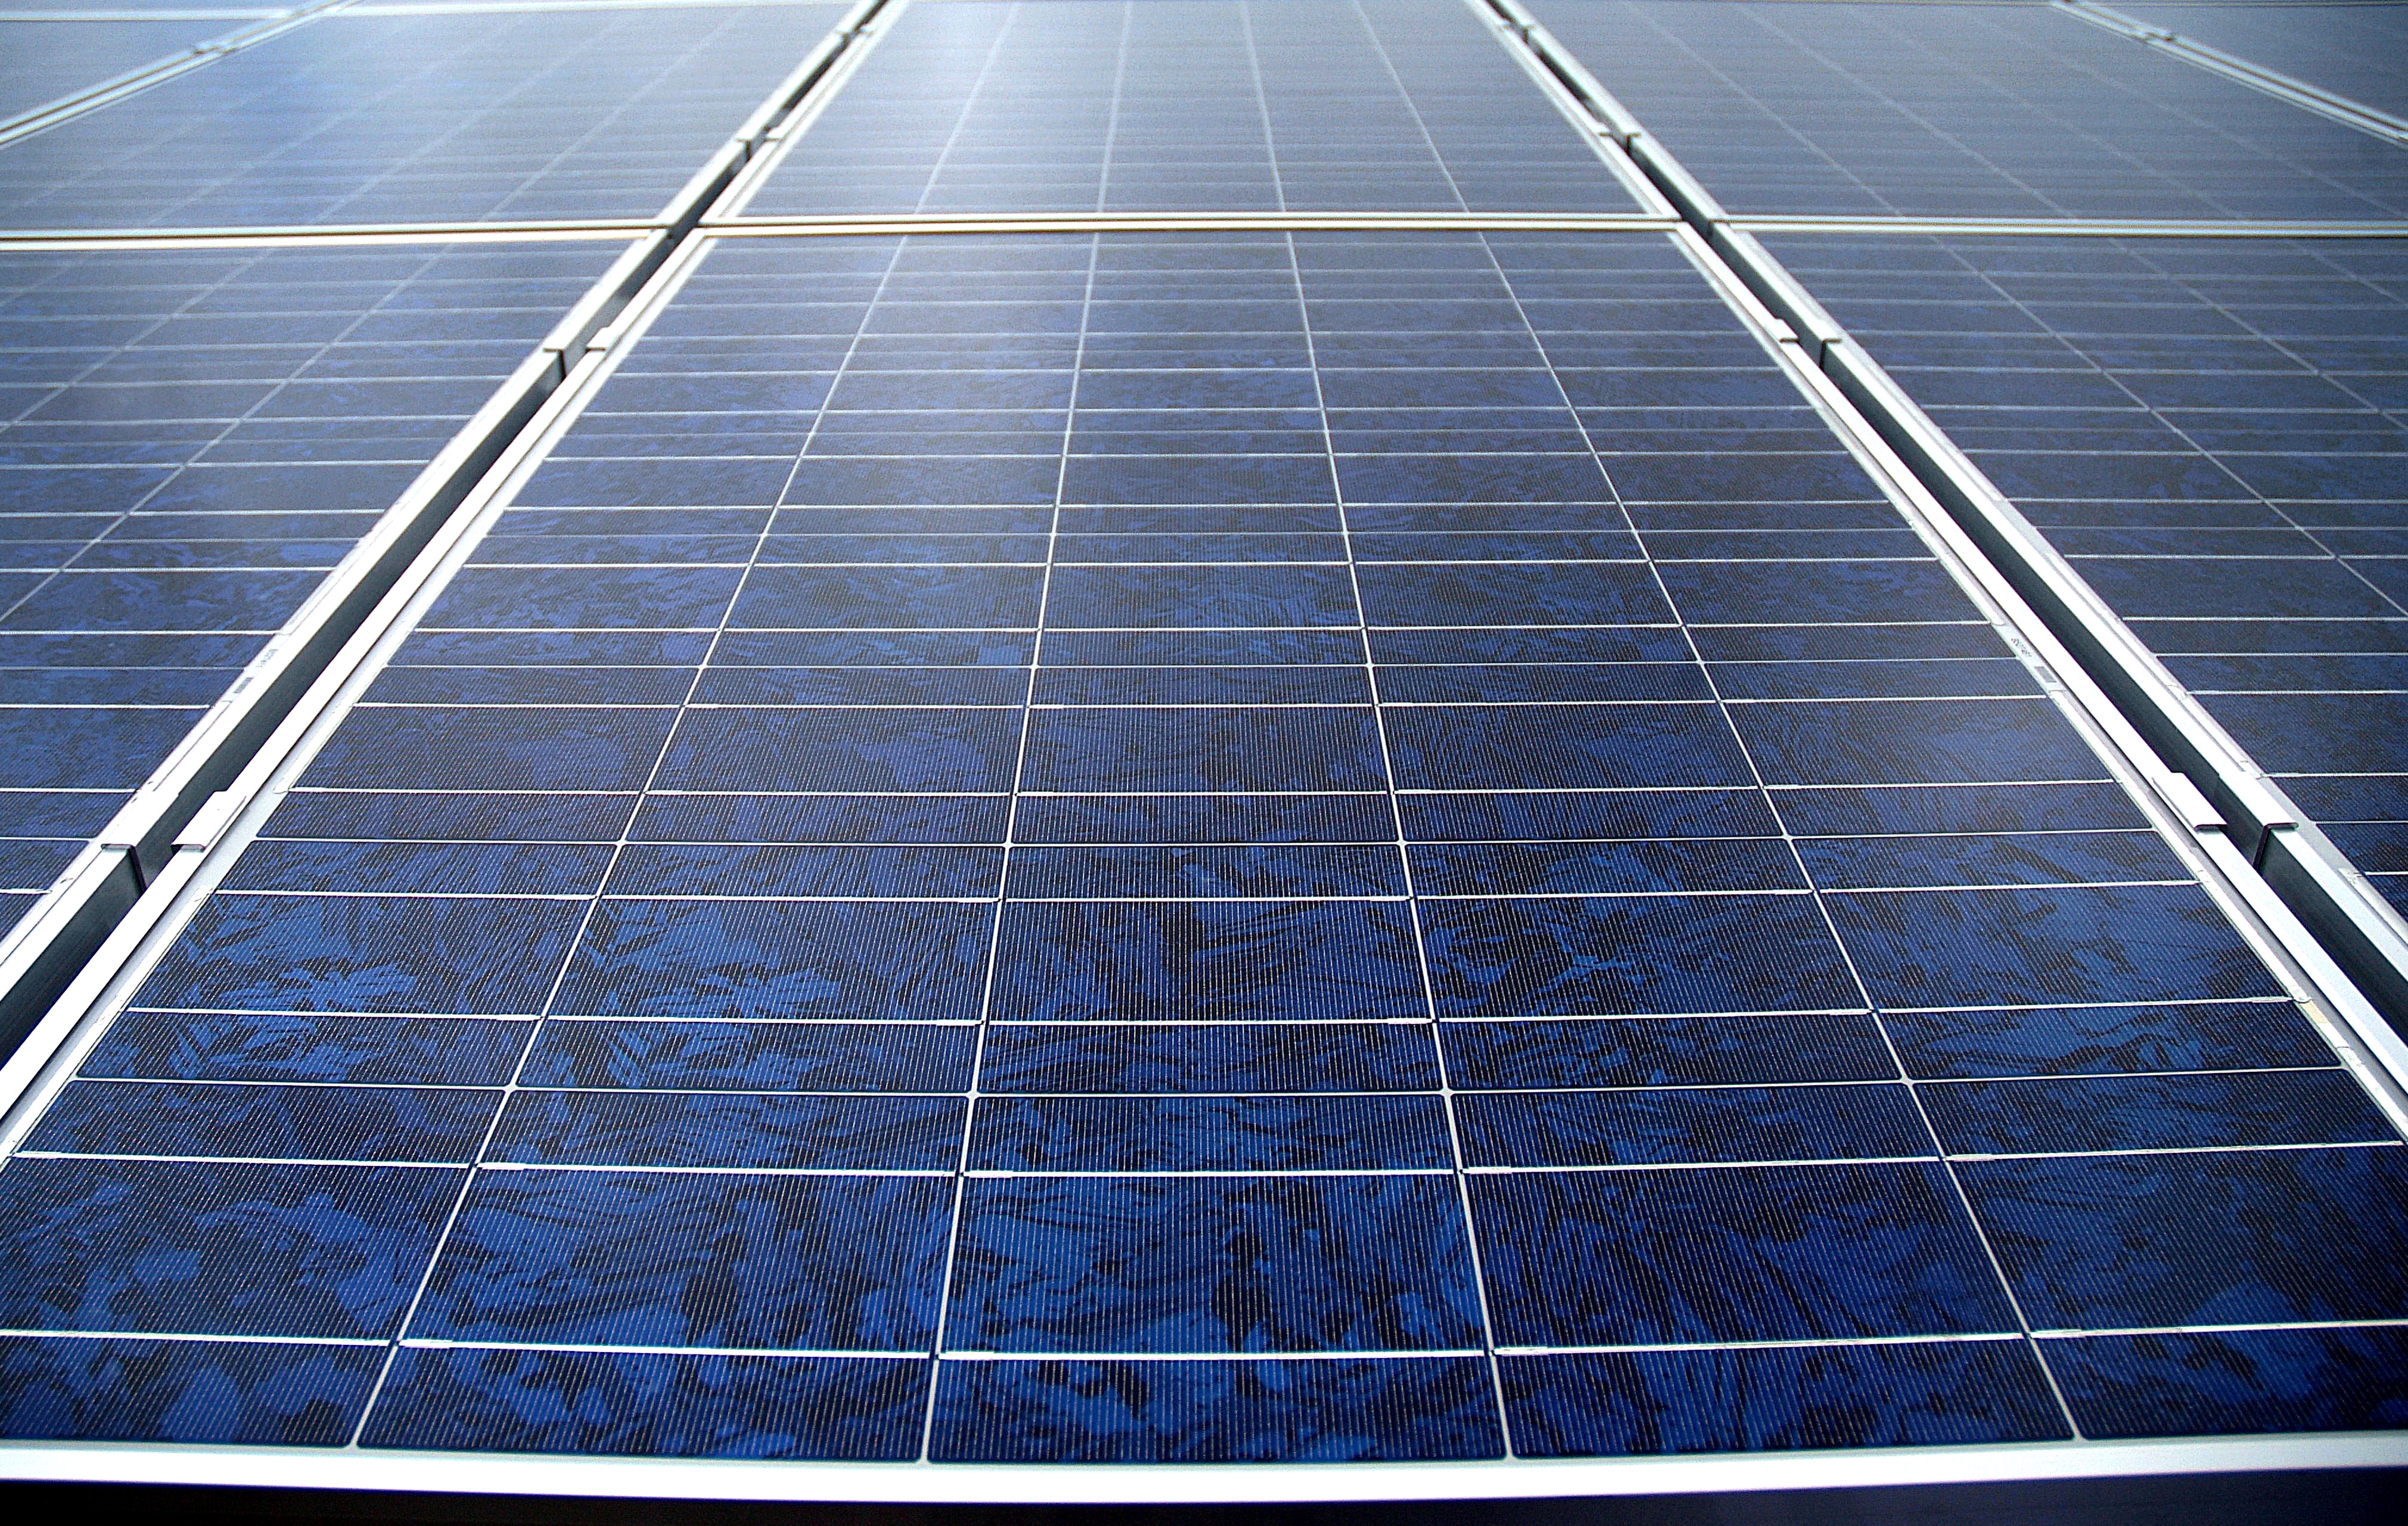 pv auctions  competition  critics warn  target